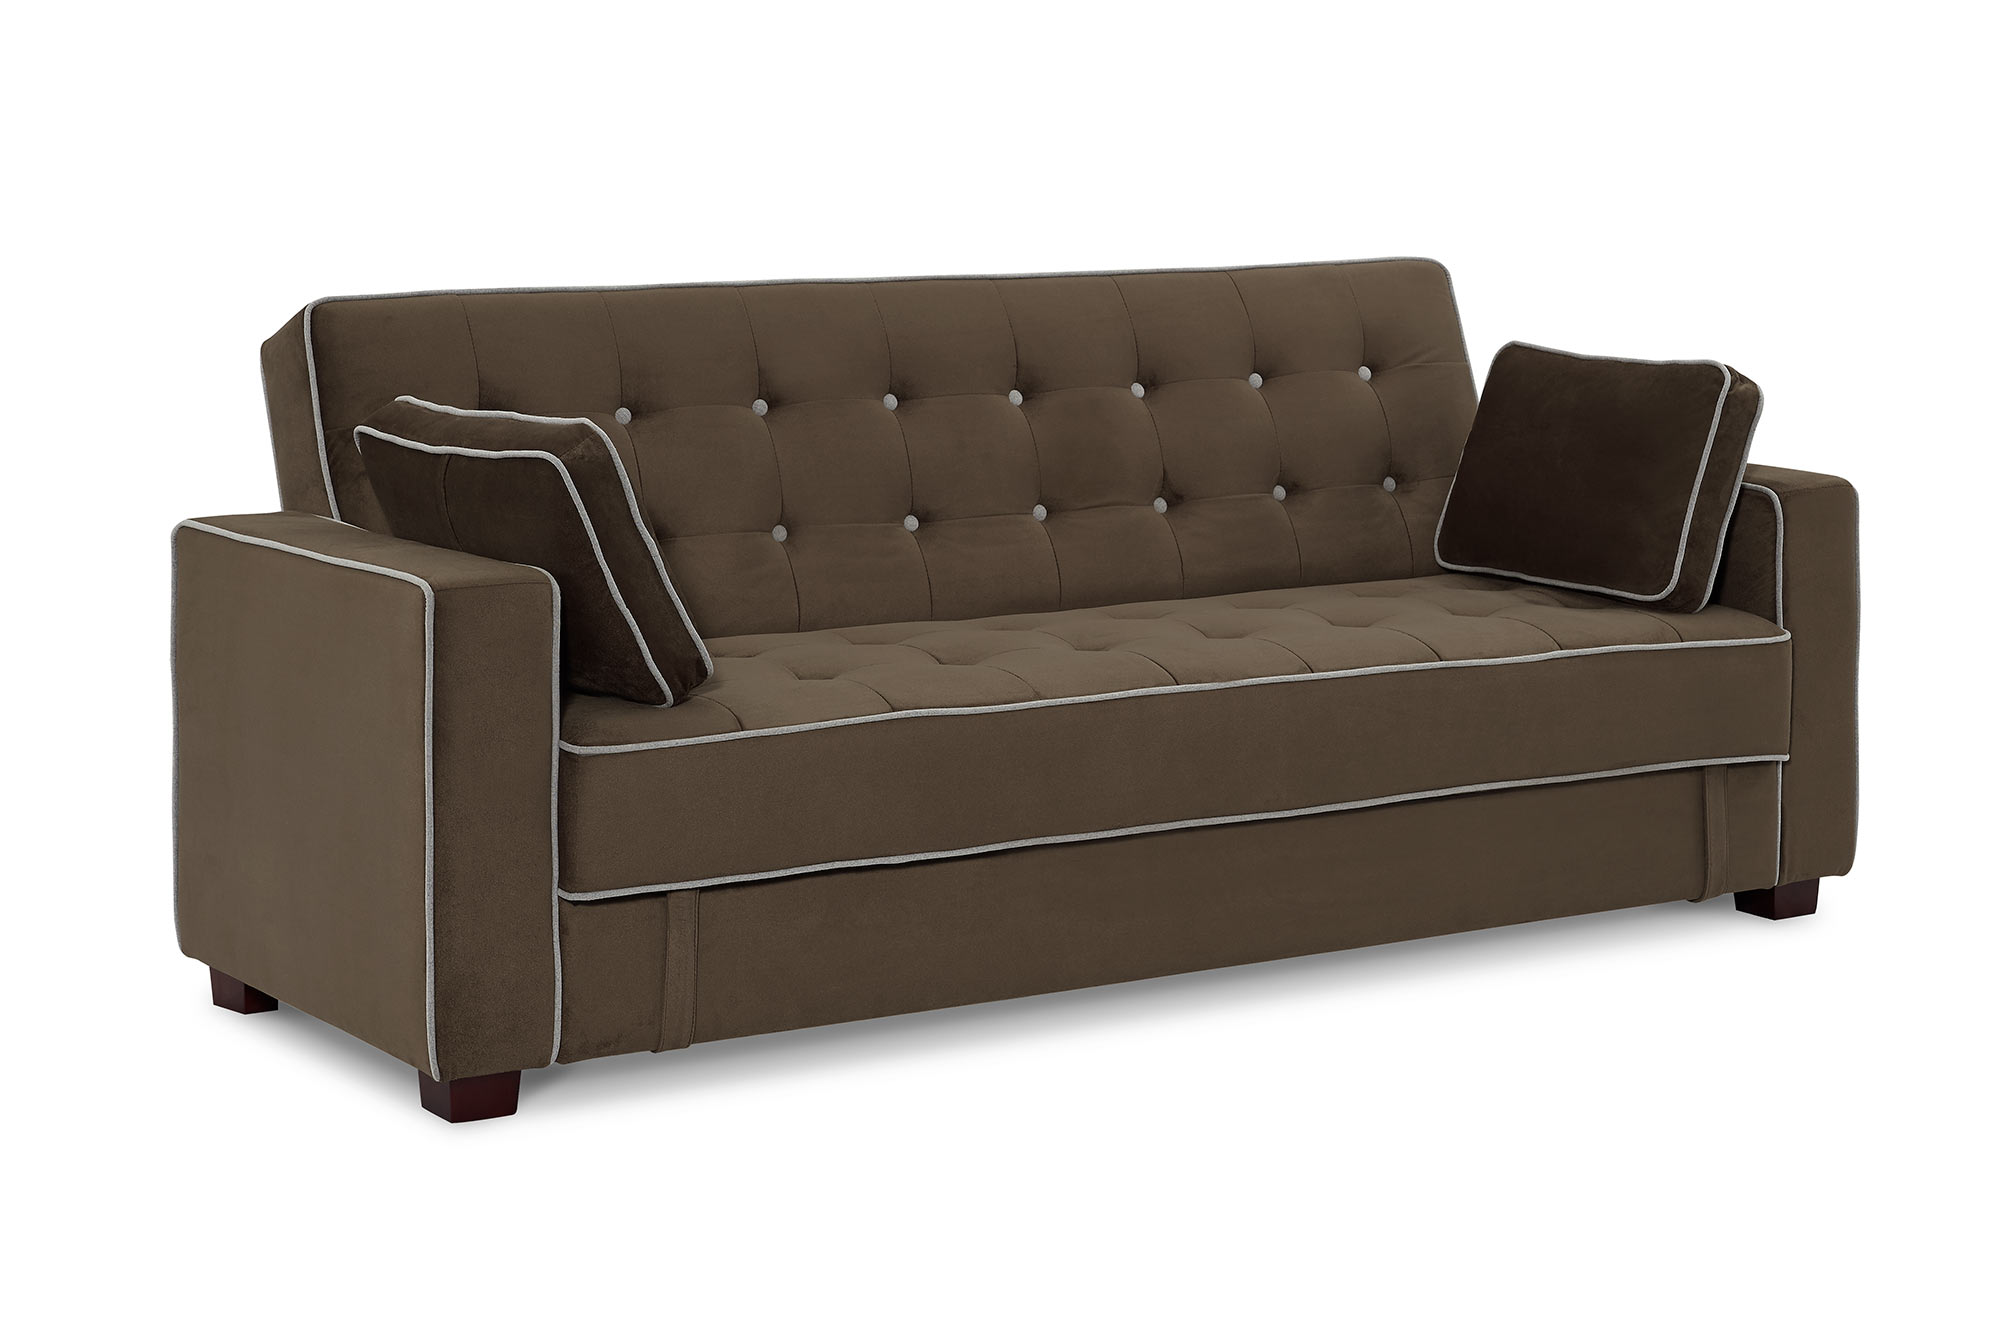 Belize Heavenly Chestnut Sofa Convertible W Storage By Sealy Convertibles